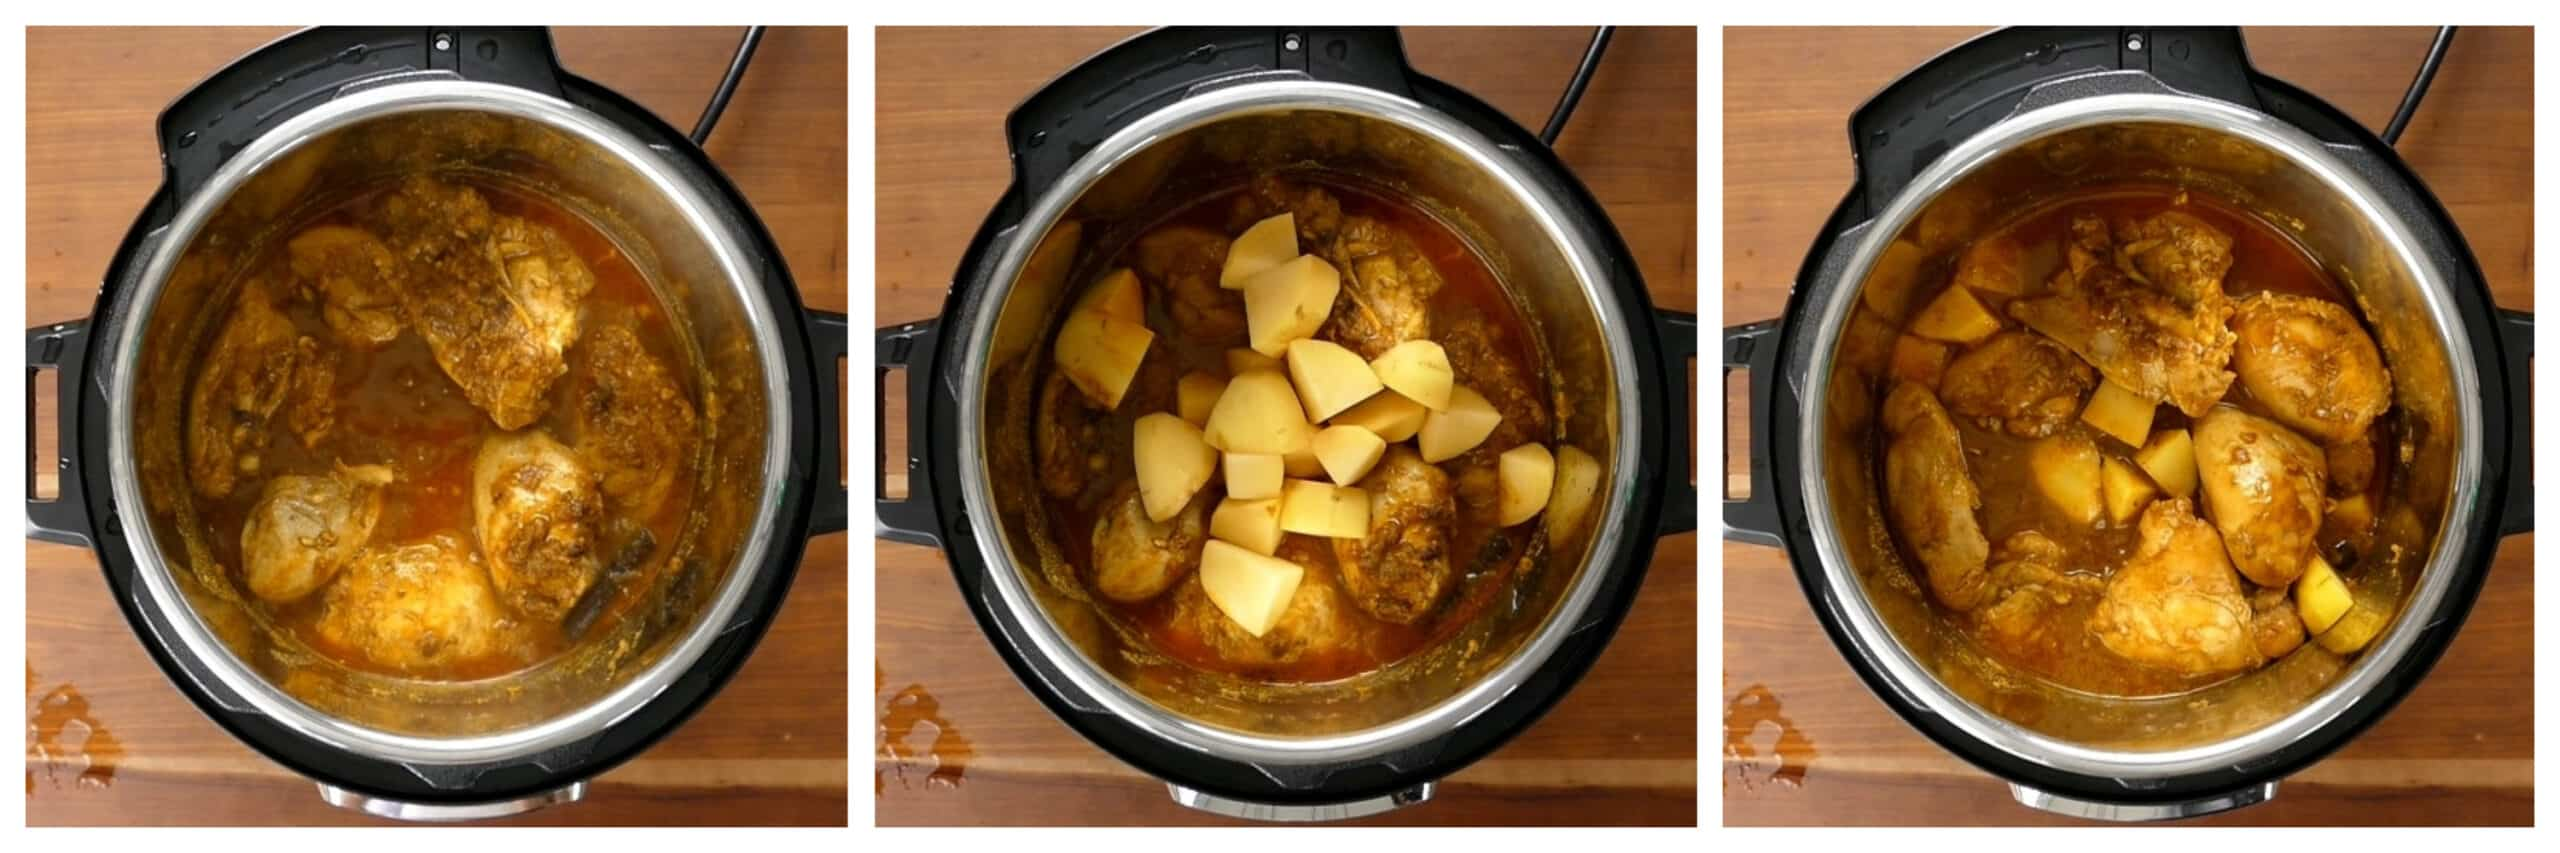 Instant Pot Chicken Curry Instructions cooked chicken, add potatoes, all stirred